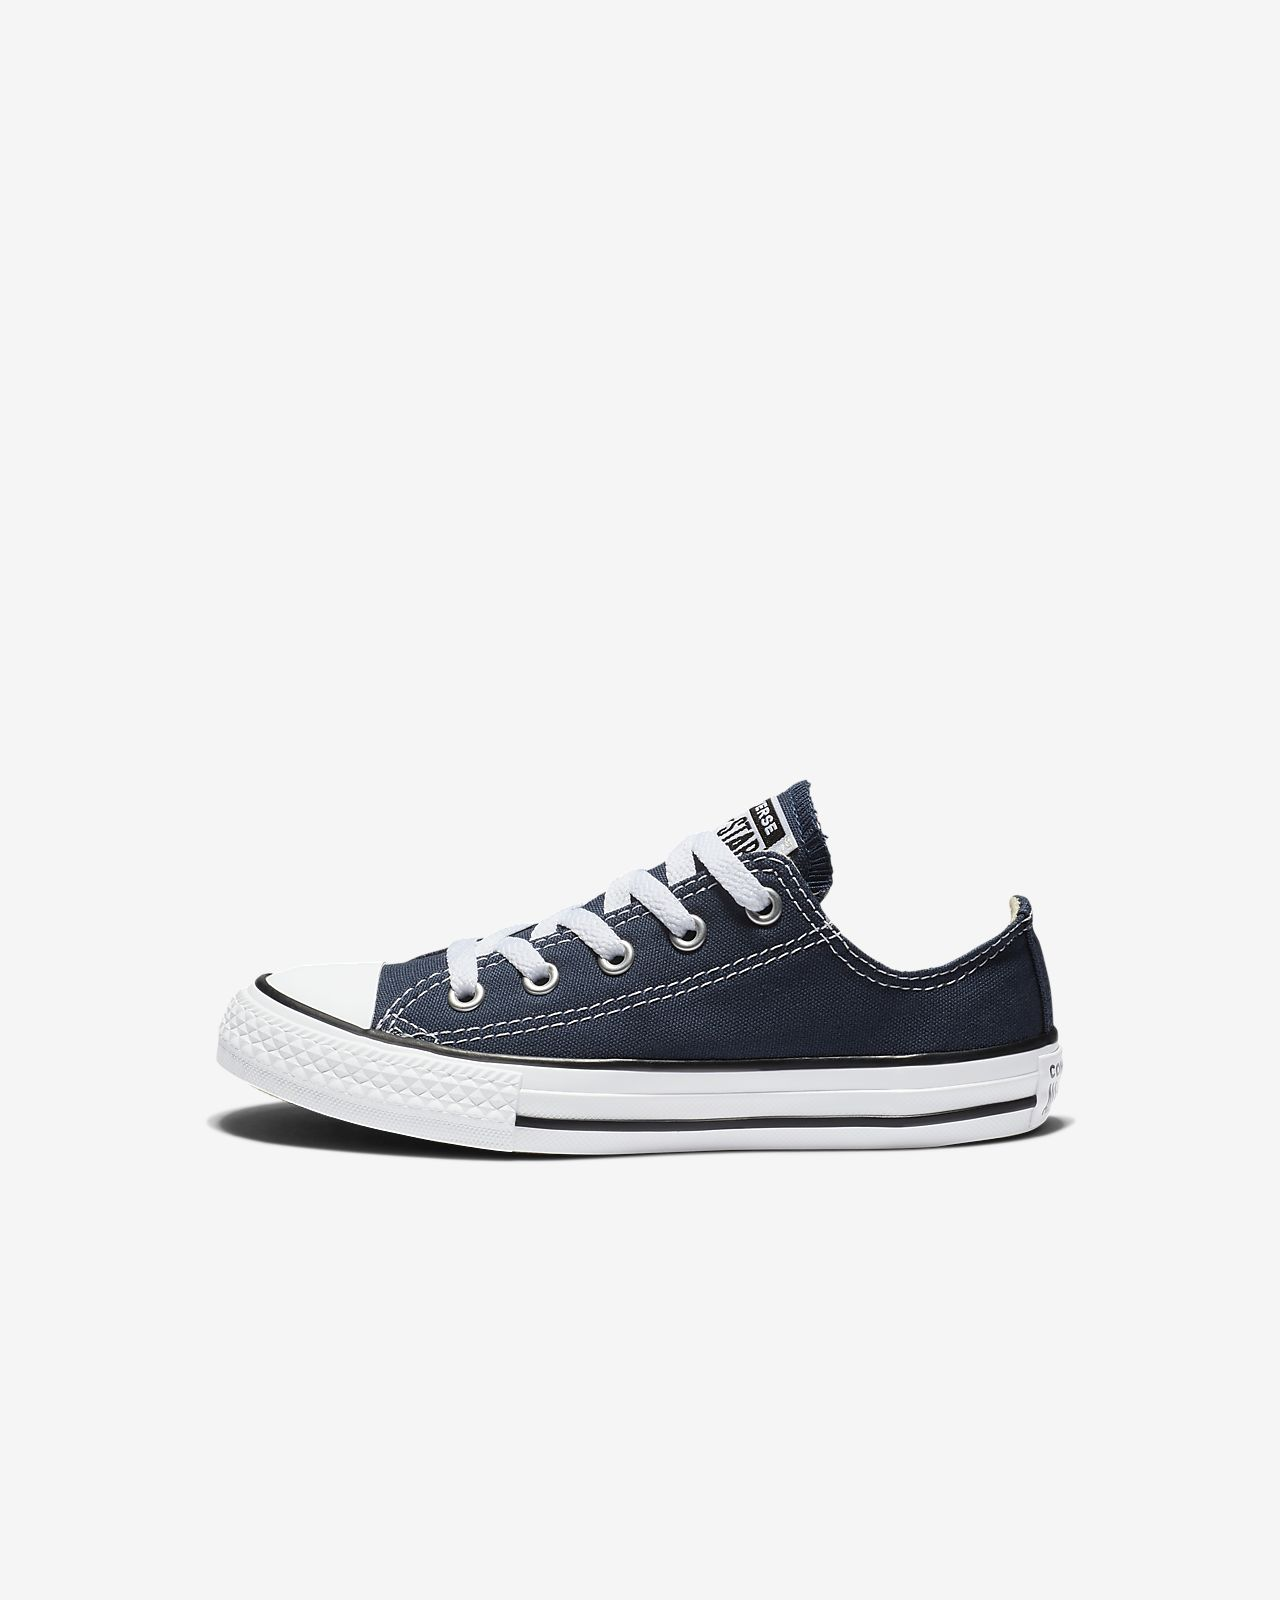 a52ed0f43ef7 Converse Chuck Taylor All Star Low Top (10.5c-3y) Little Kids  Shoe ...